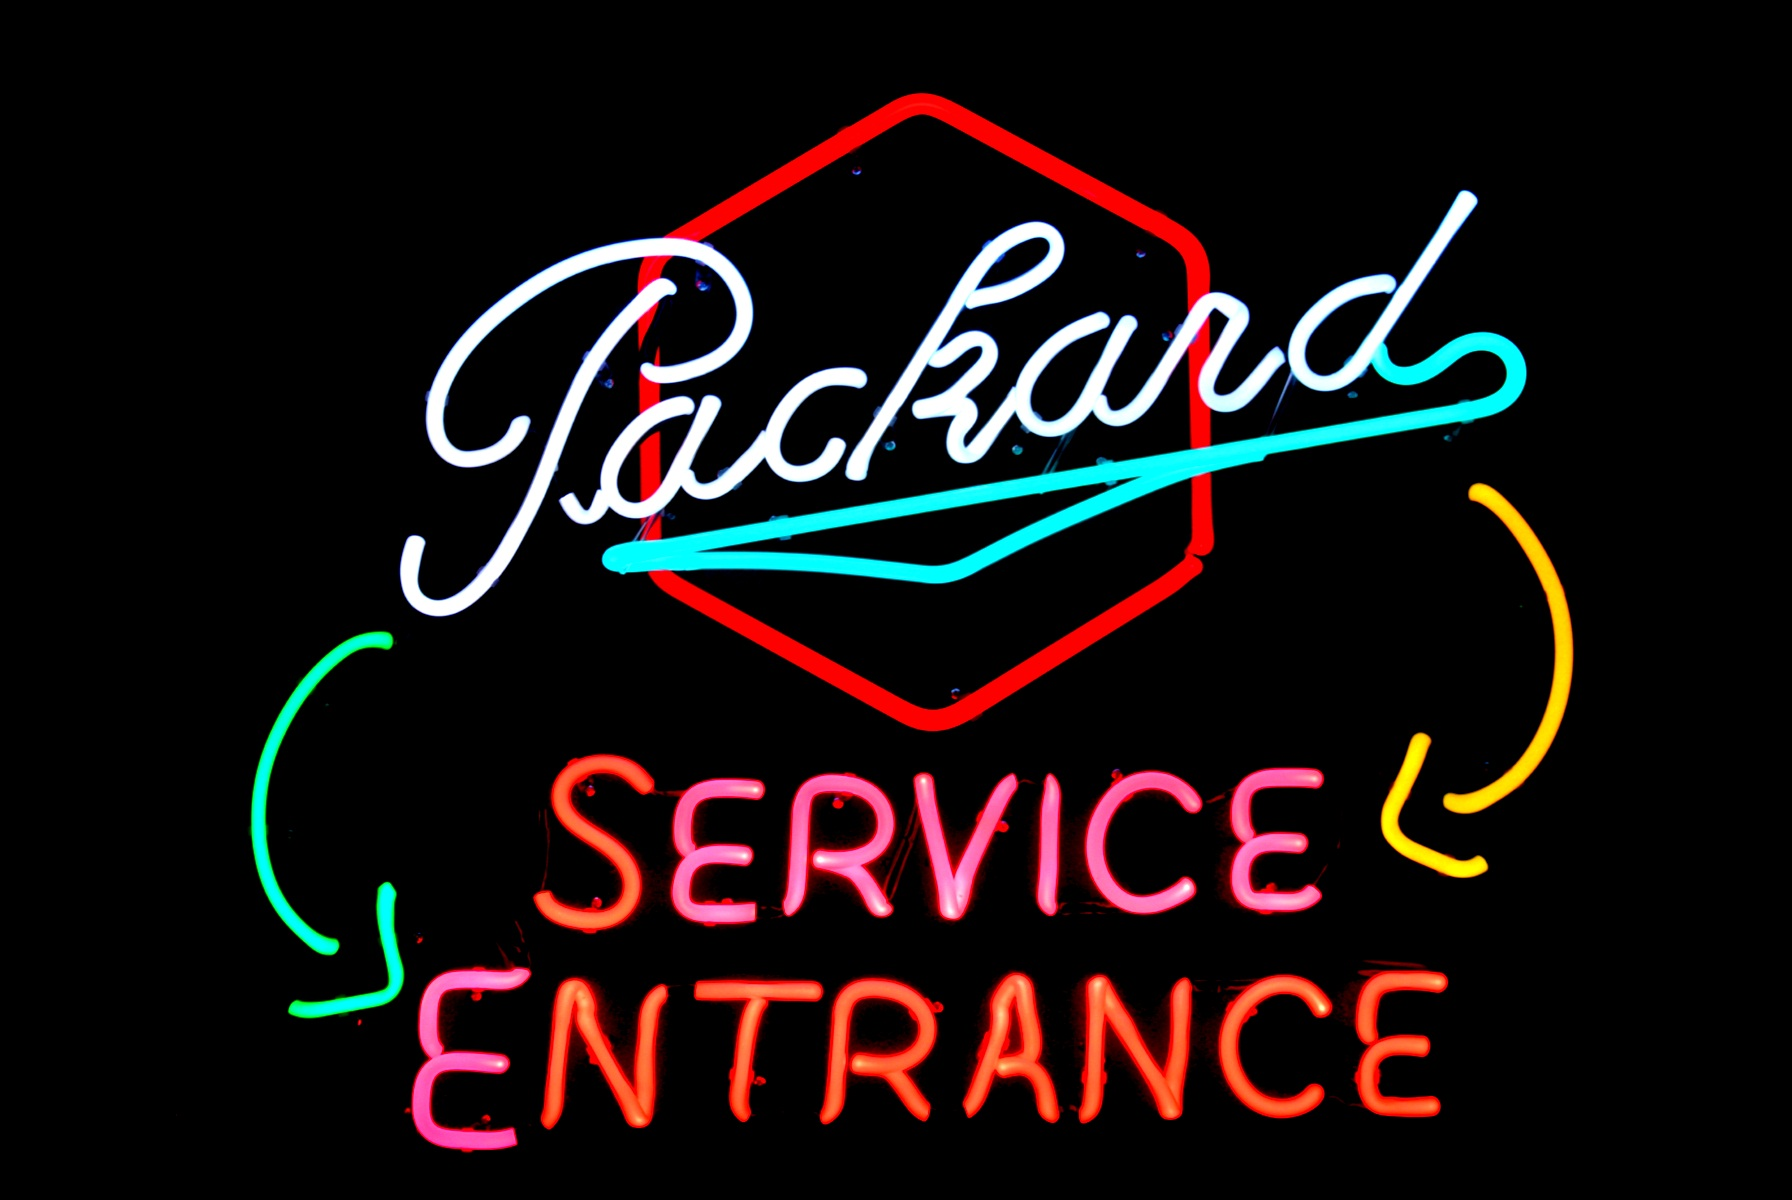 Packard Service Entrance dealership neon sign.jpg